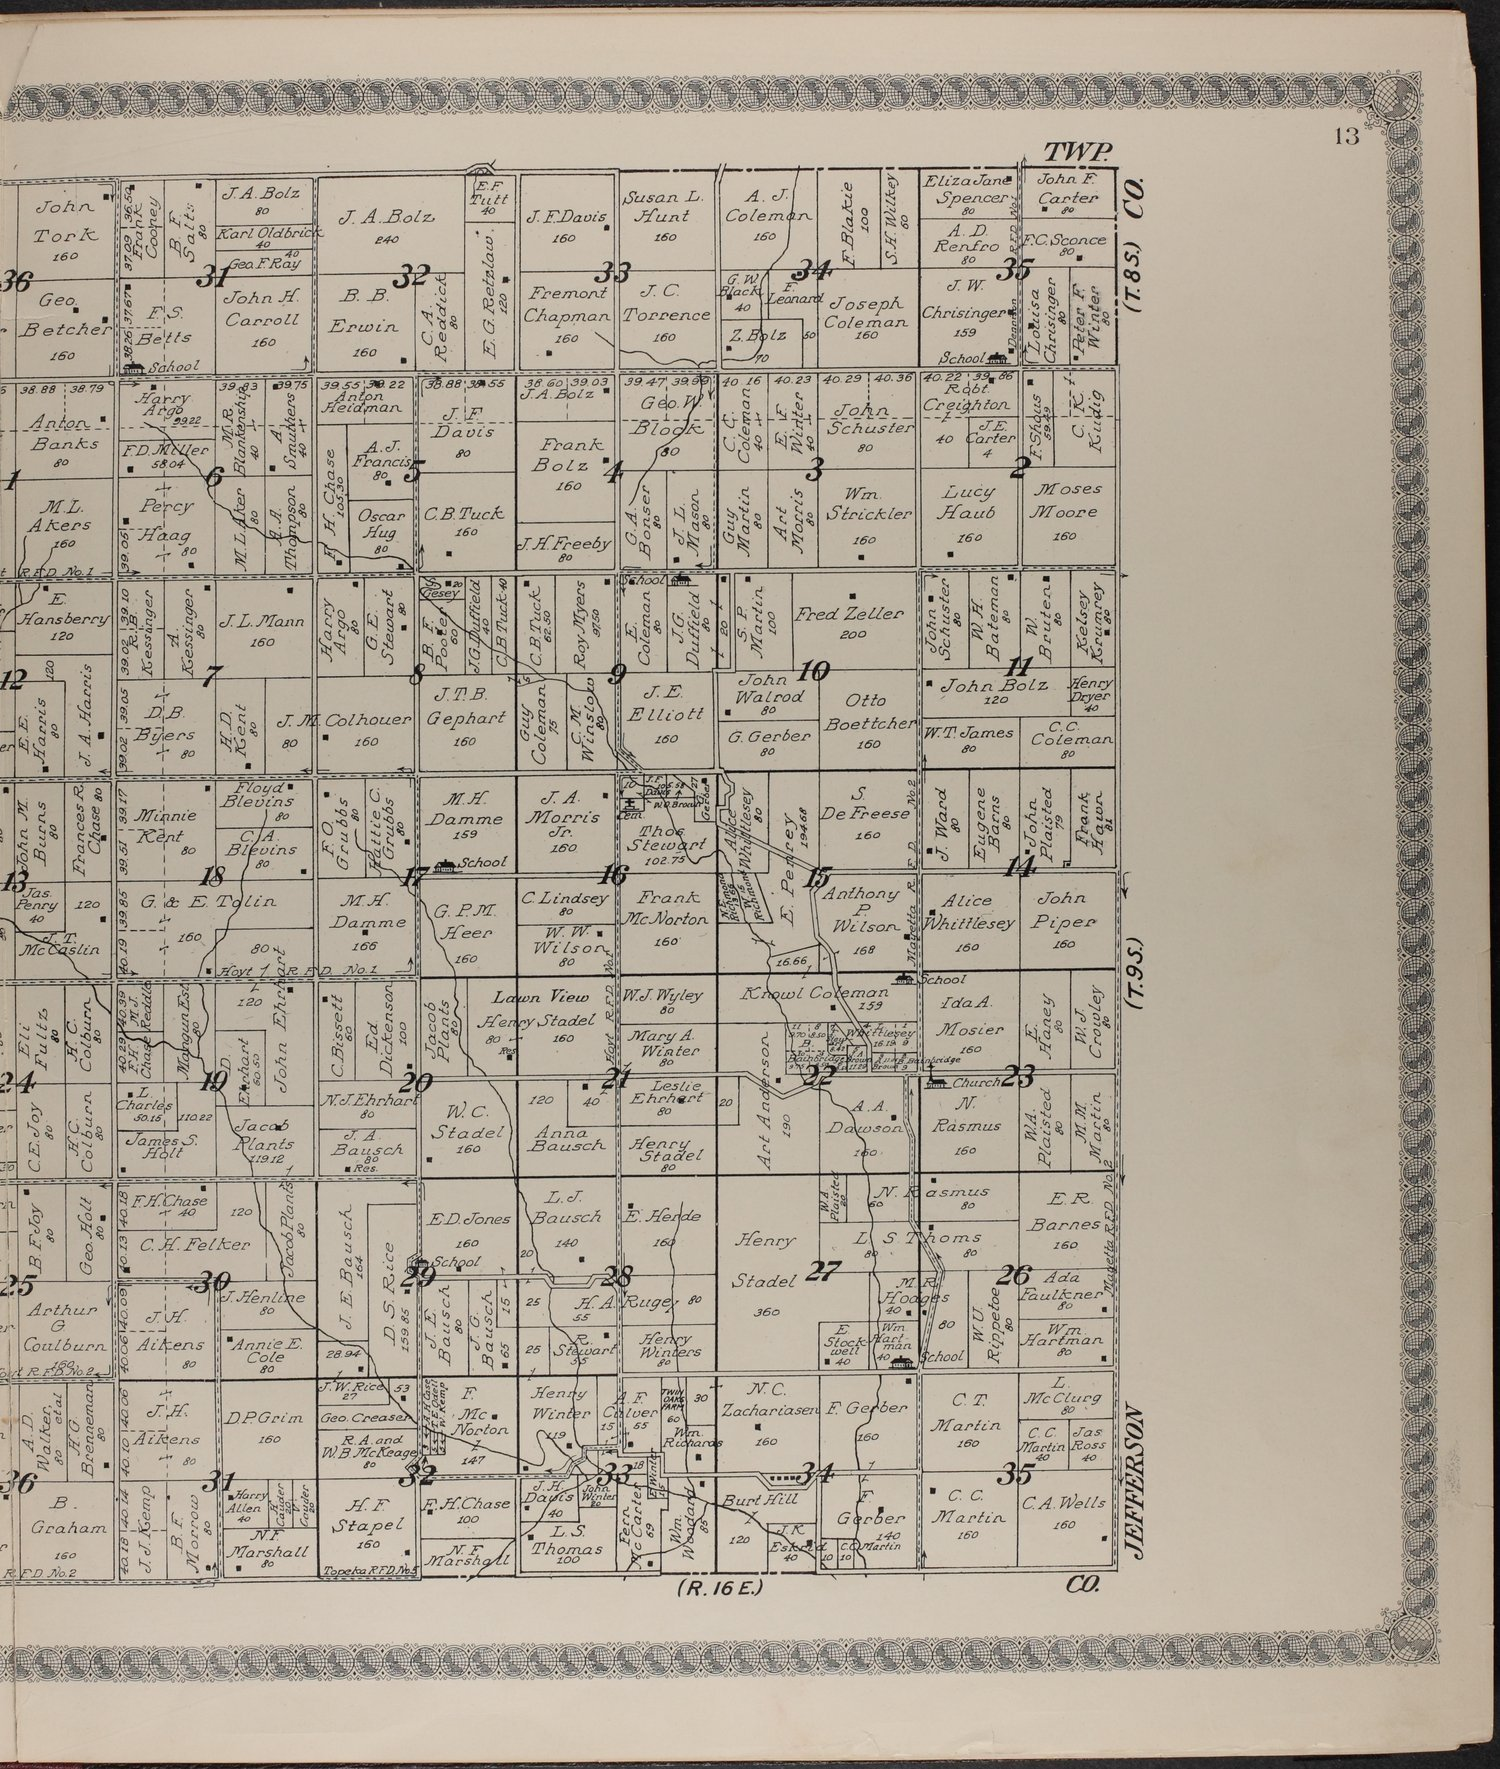 Standard atlas of Jackson County, Kansas - 13